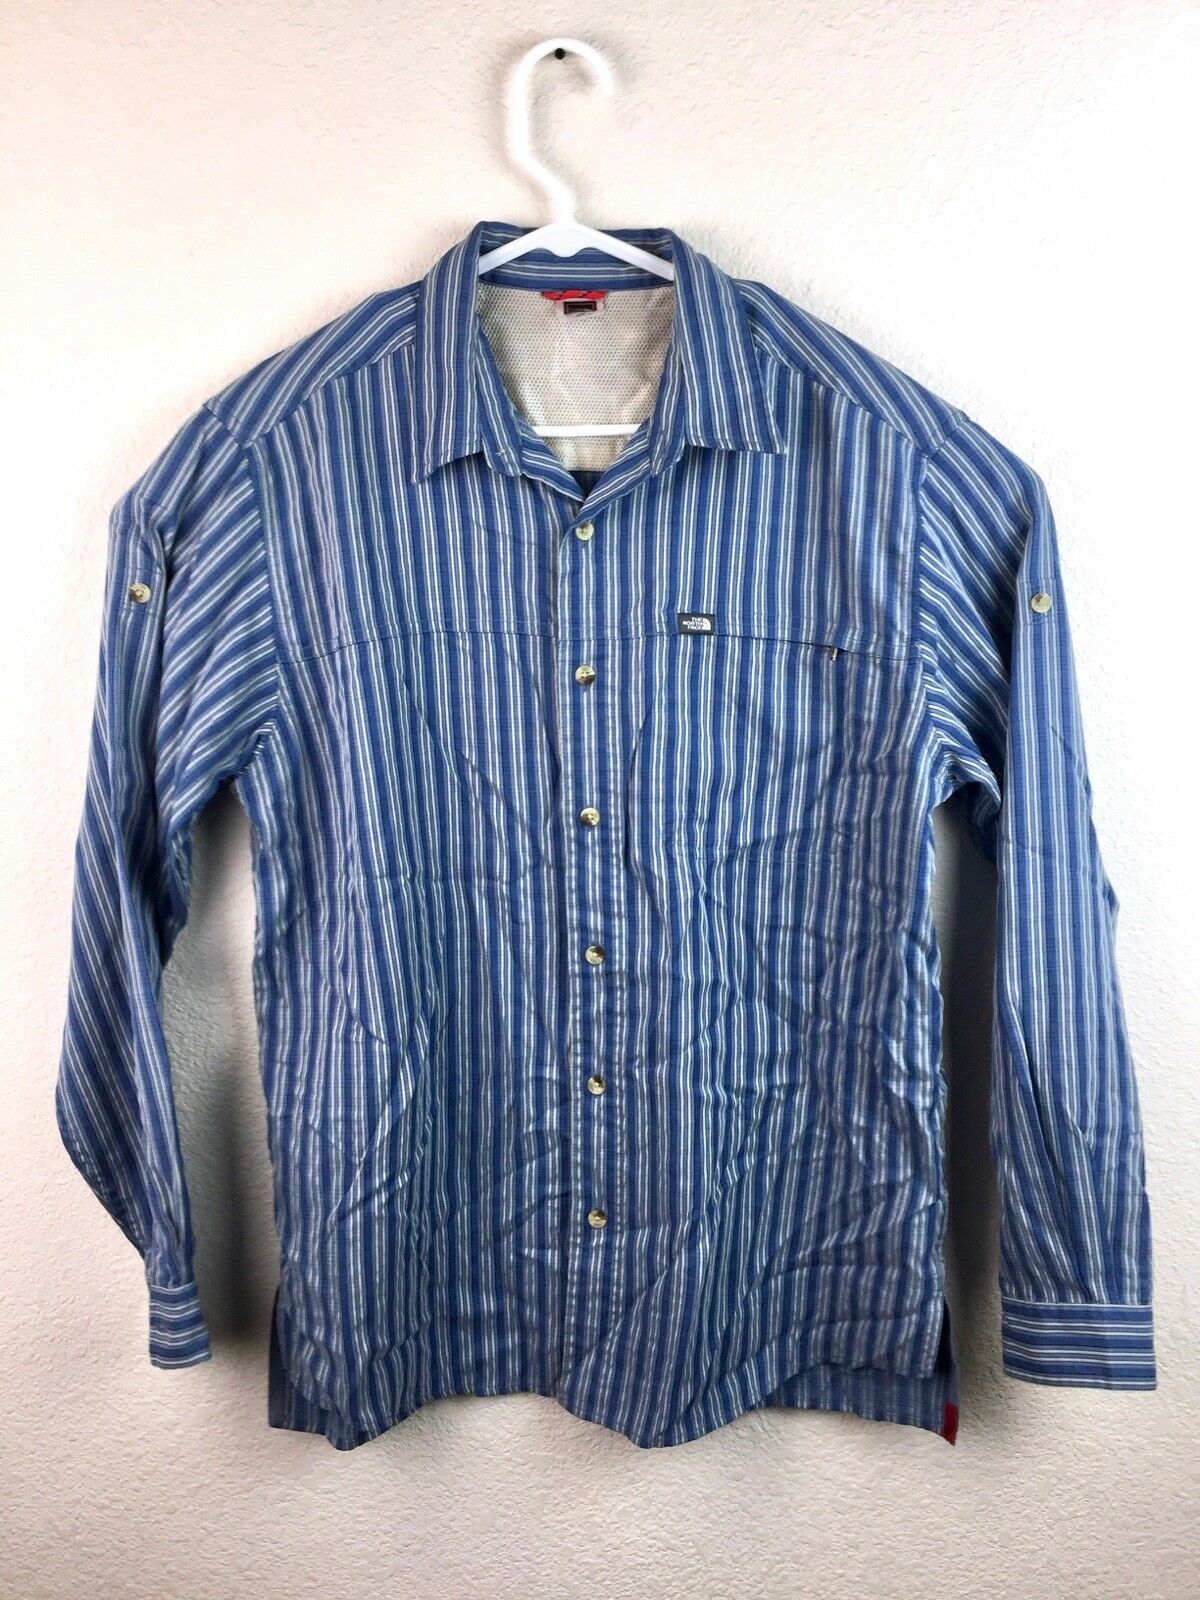 1883a39bf The North Face Men's bluee Long Sleeve Button Up Shirt Size Medium ...